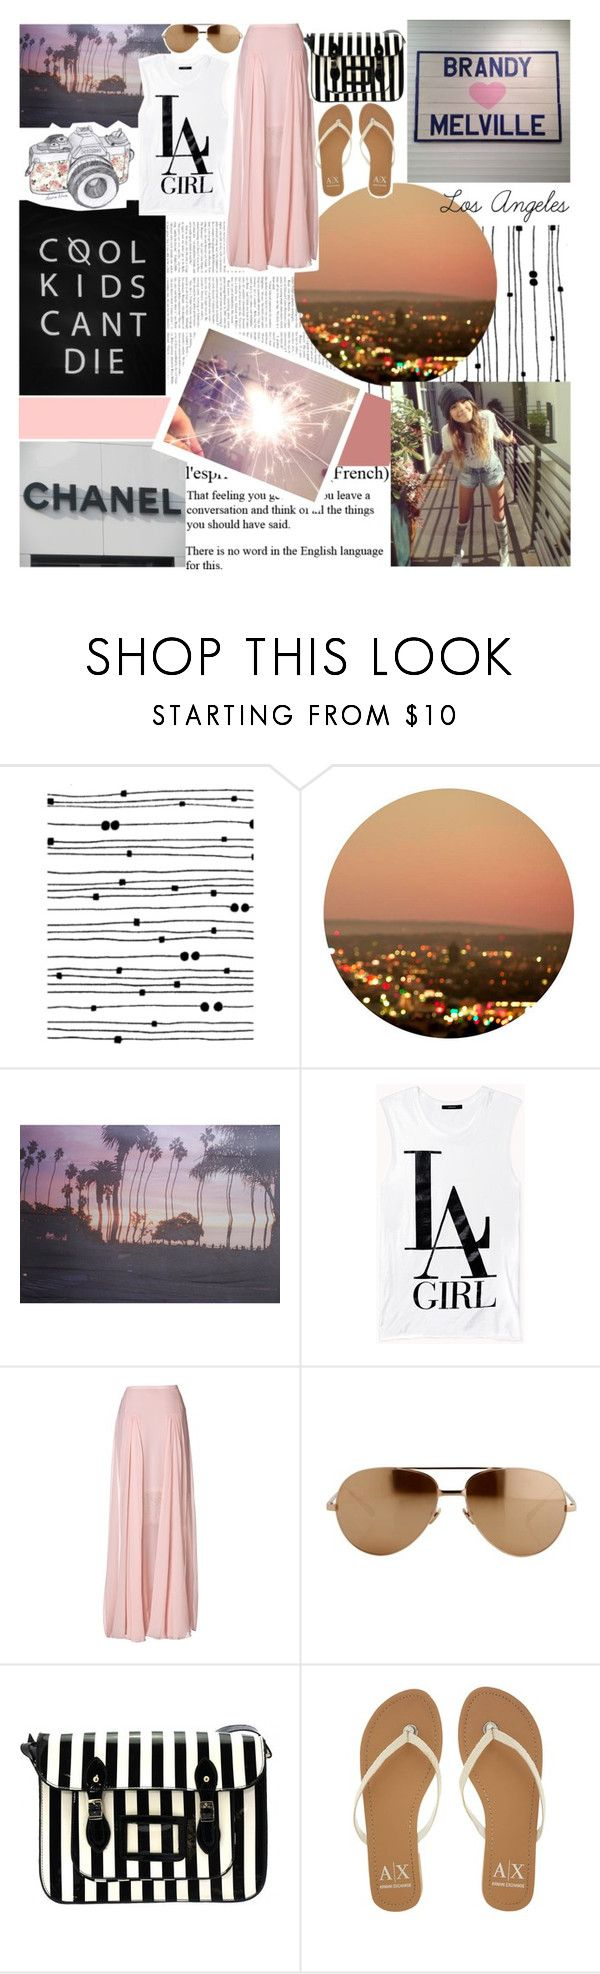 """BOTC~Los Angeles Dreams"" by mayaml18 ❤ liked on Polyvore featuring Dead Castle Project, 813 Ottotredici, Forever 21, By Malene Birger, Linda Farrow, Armani Exchange, vintage and toofabulous"